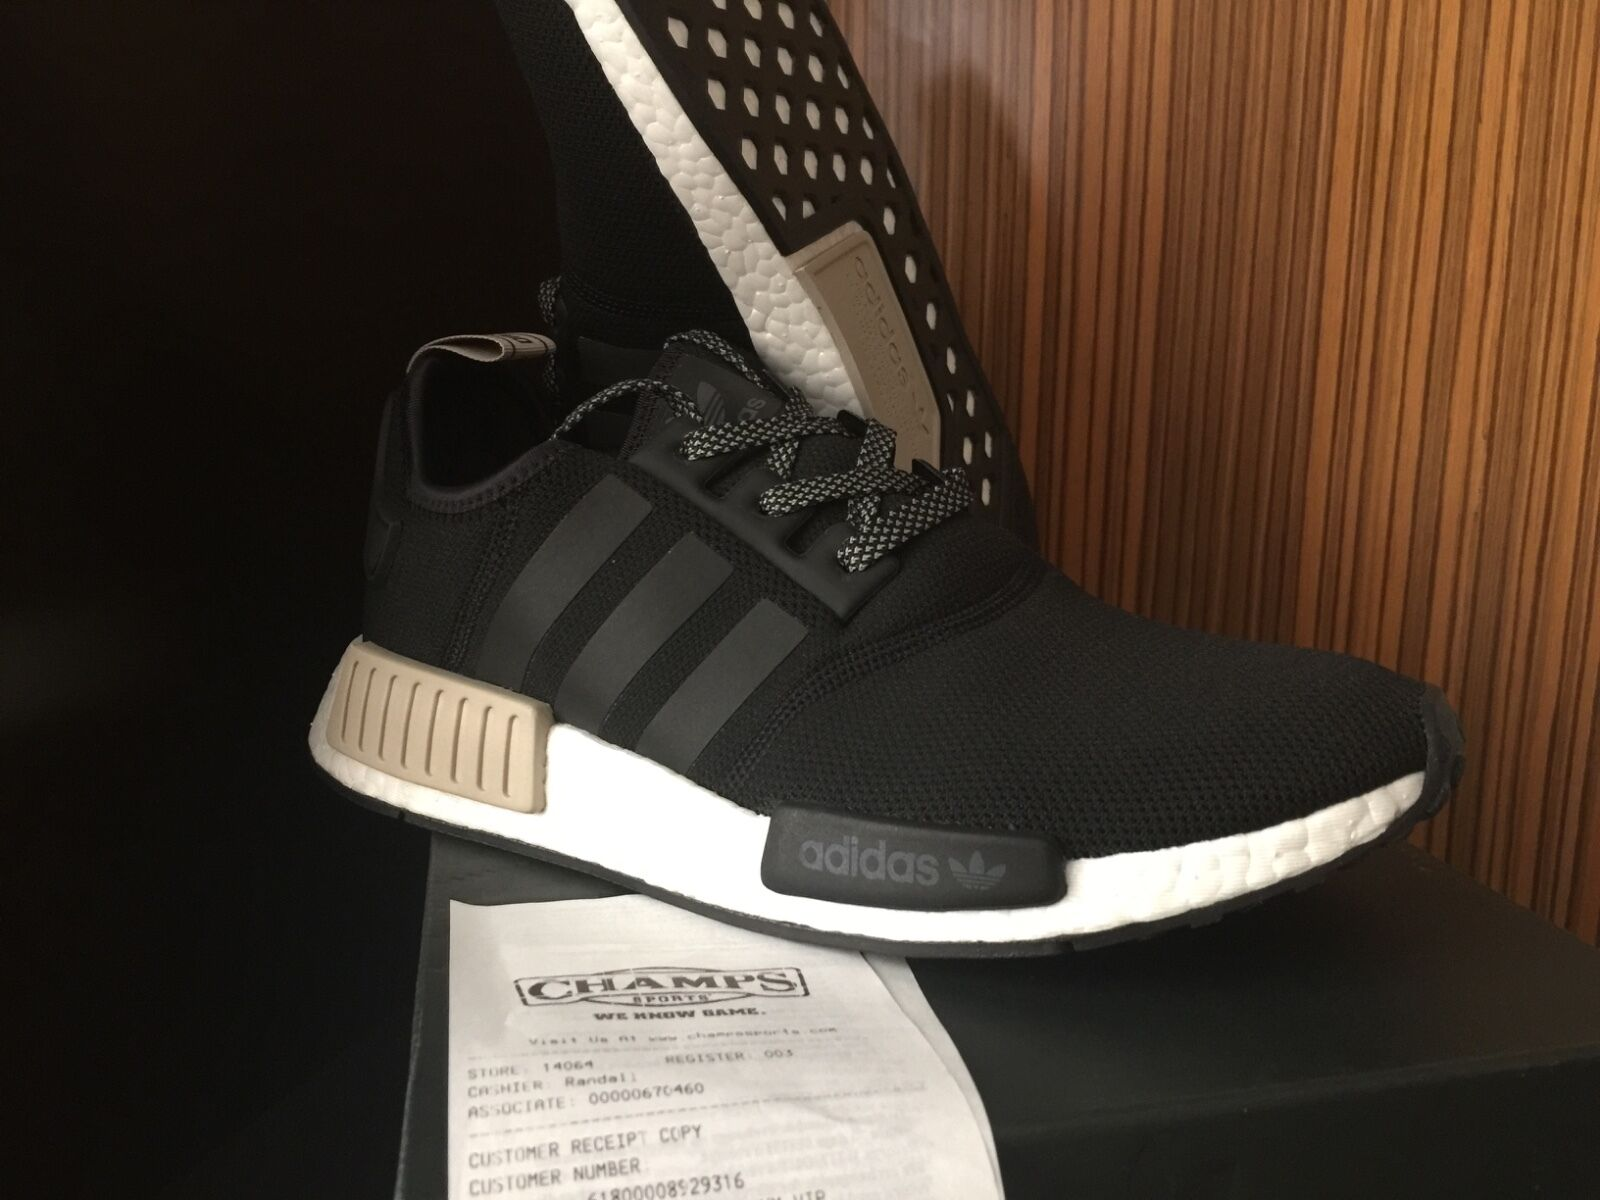 Adidas NMD ALL Black Wool Reflective flux ultra boost White red R1 Gray XR1 Camo